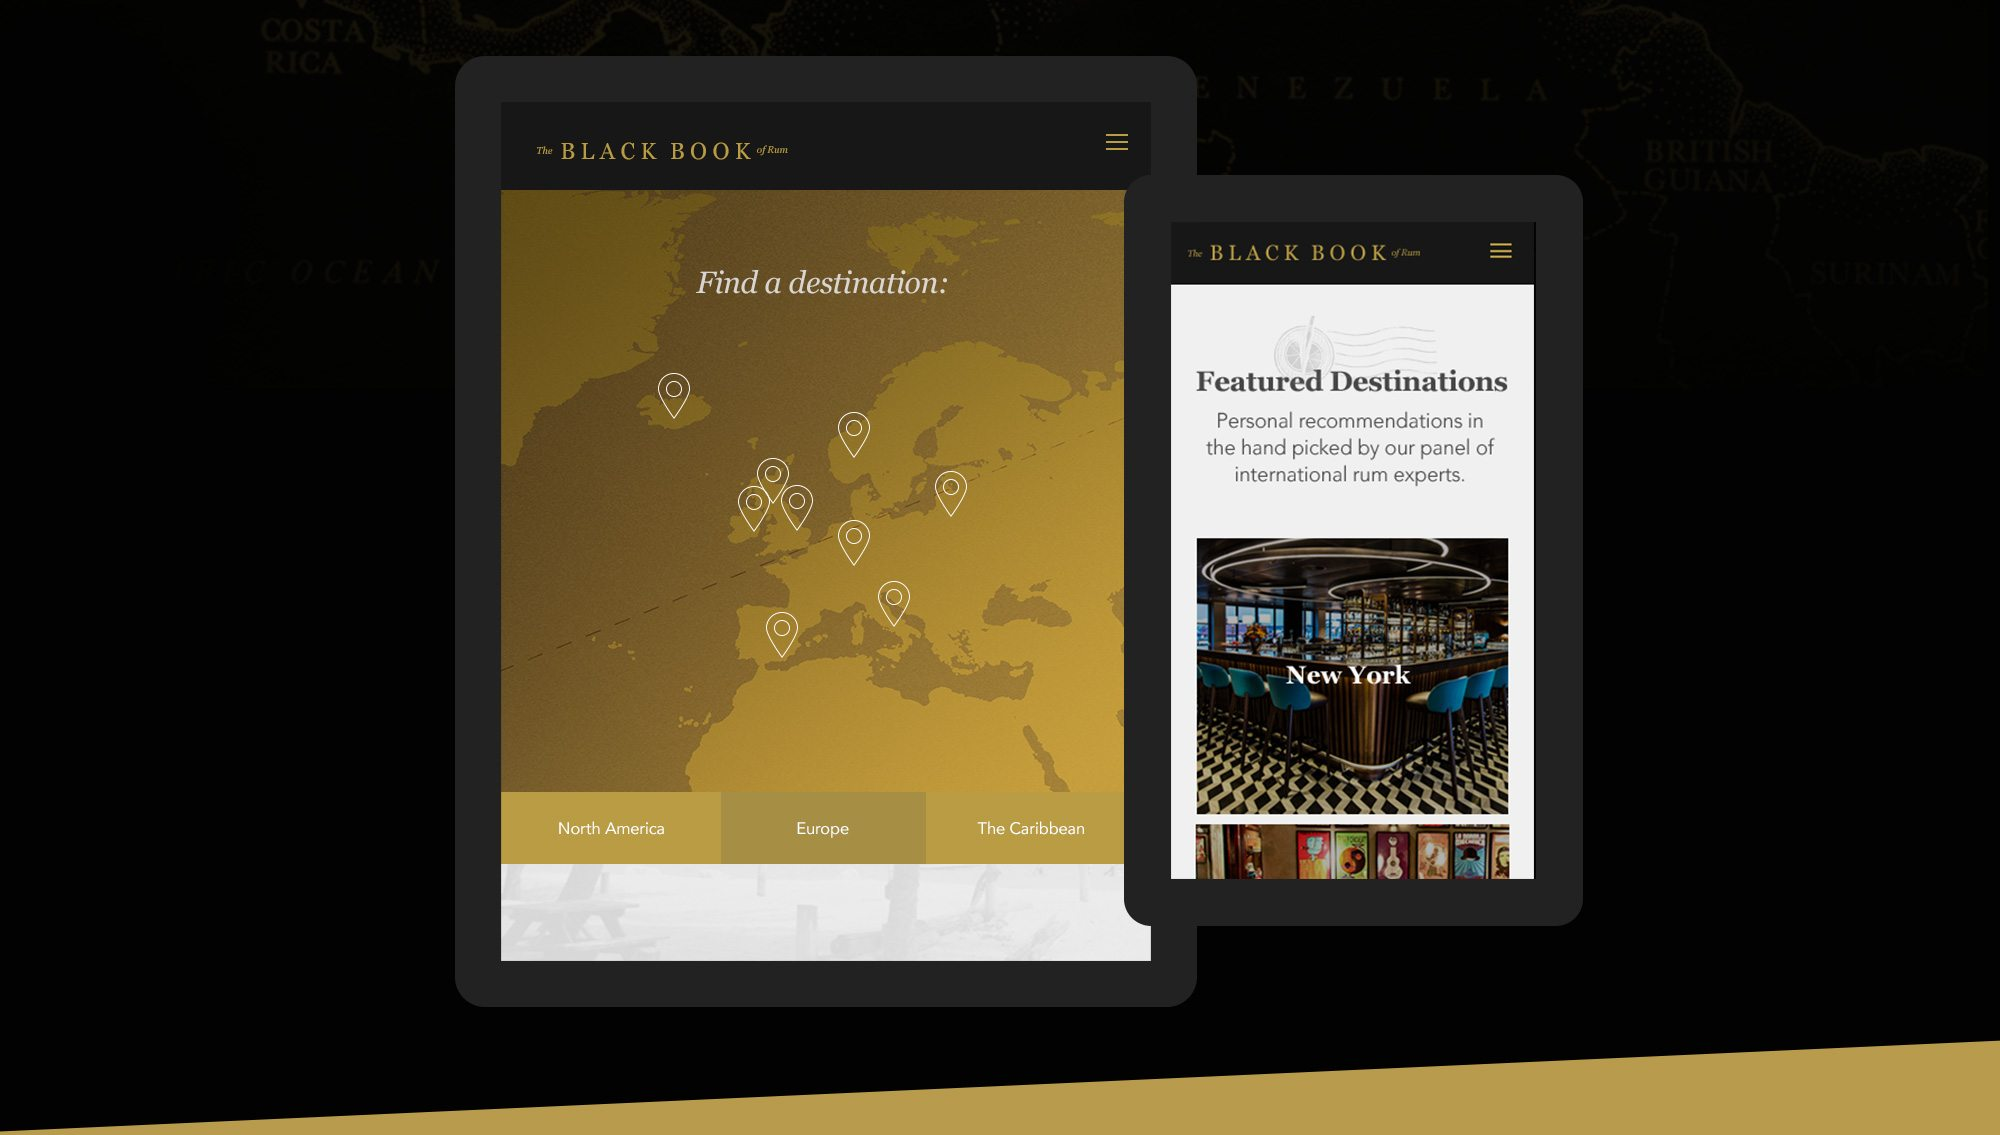 Black Book Of Rum Website Design UX Demo